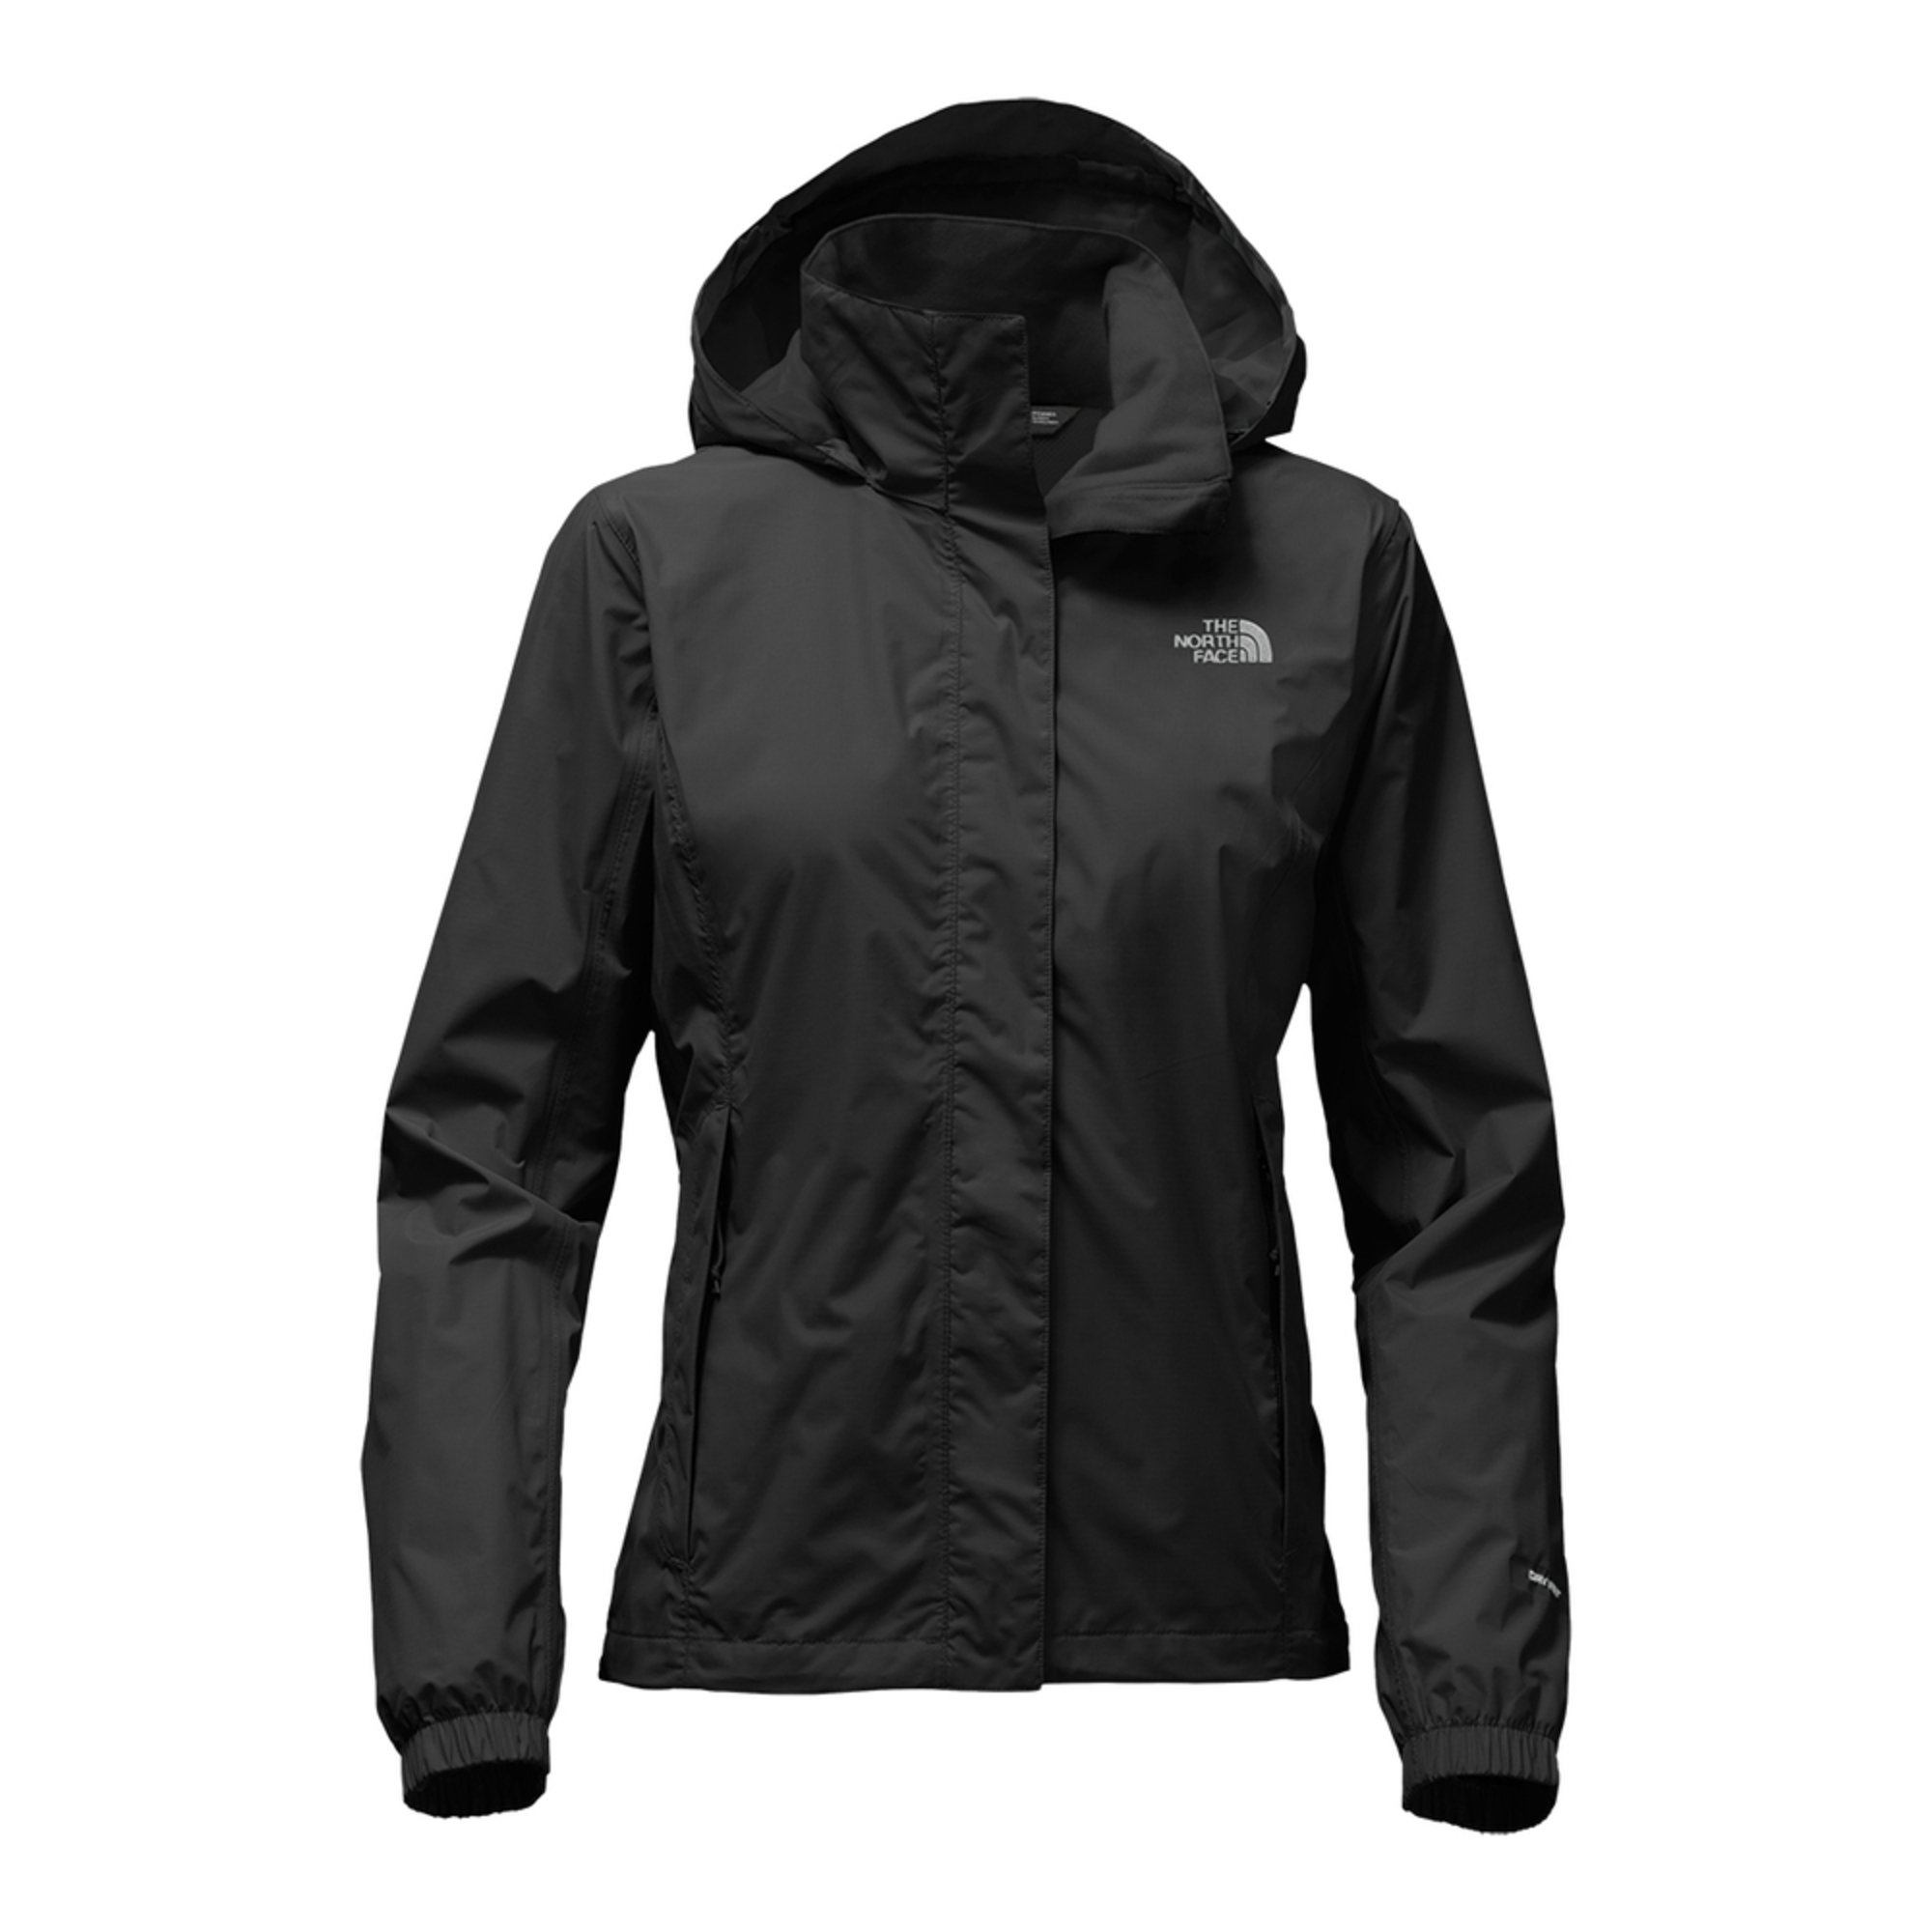 The North Face Women's Resolve 2 Jacket in Extended Sizes